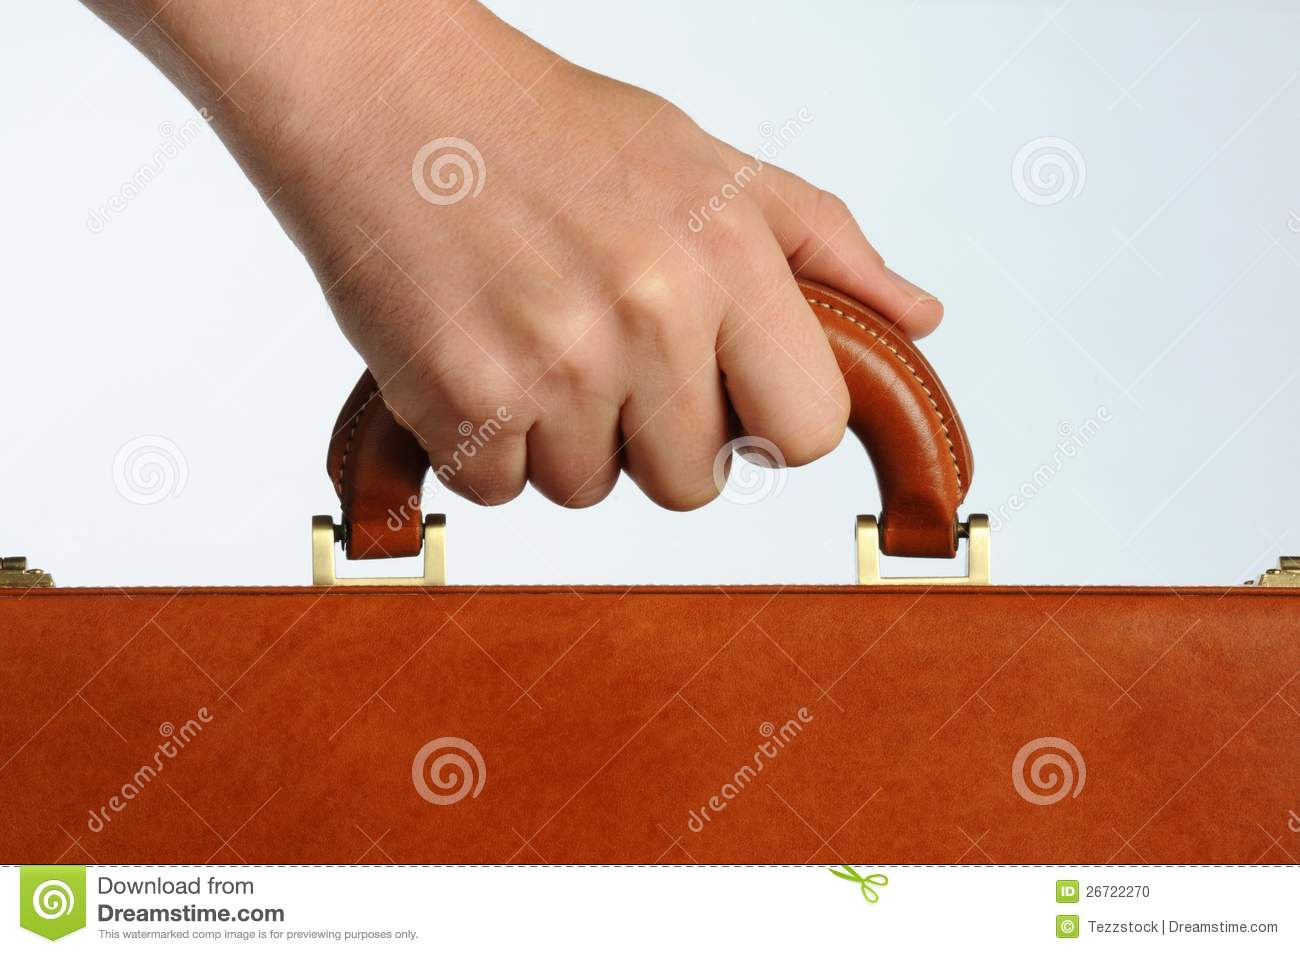 Hand Holding Handle Stock Photo - Image: 26722270